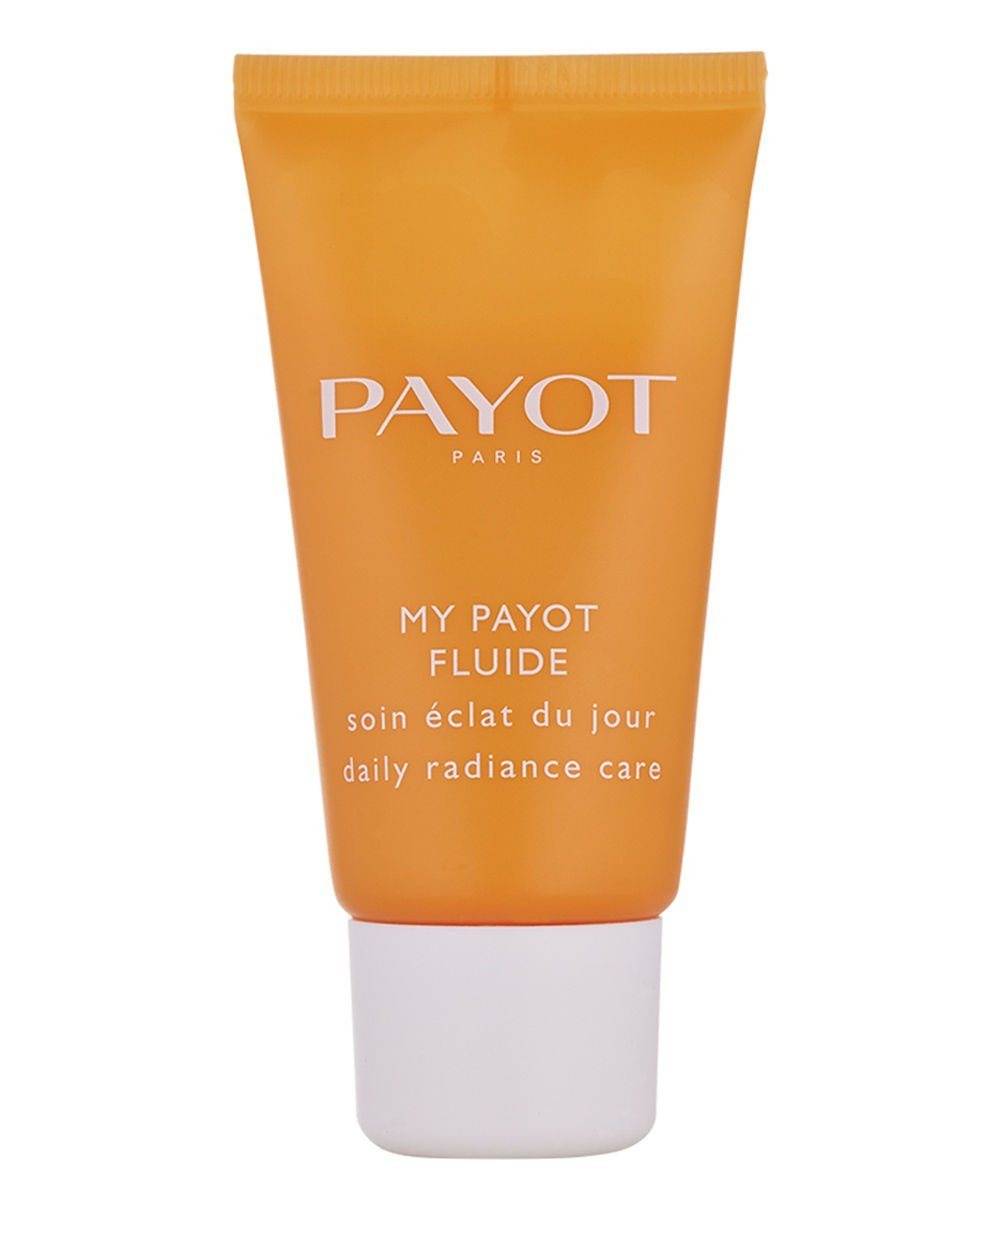 Payot Feuchtigkeitspflege »My Payot Fluide«